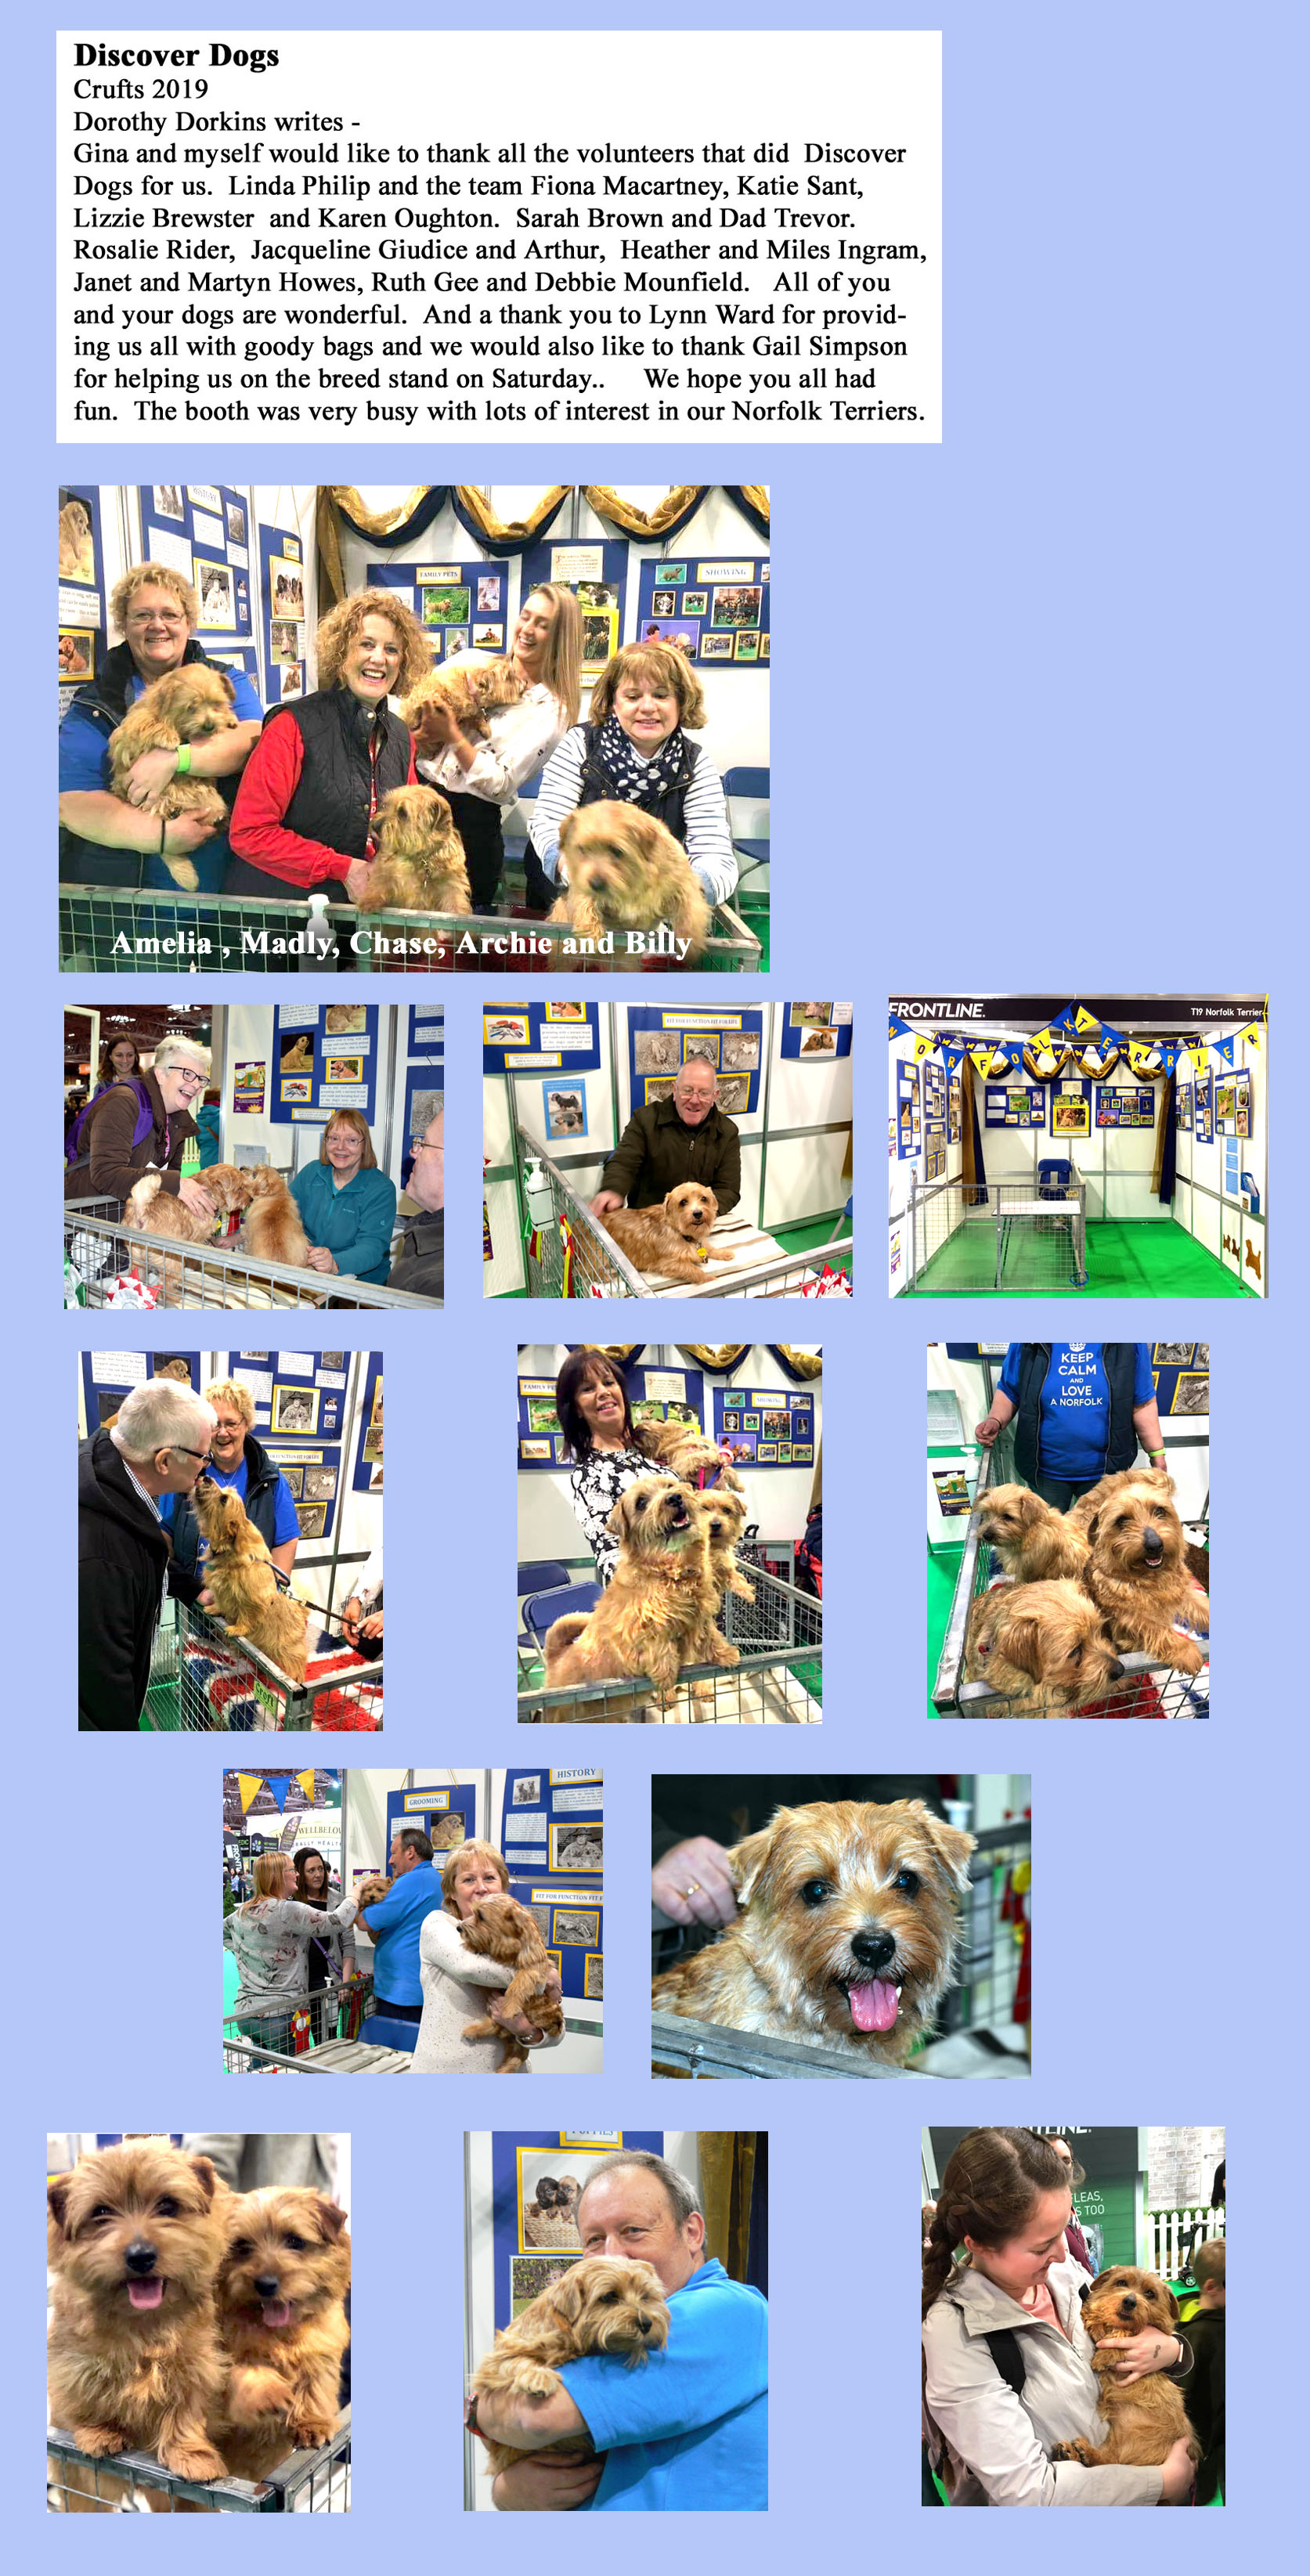 Discover Dogs 2019